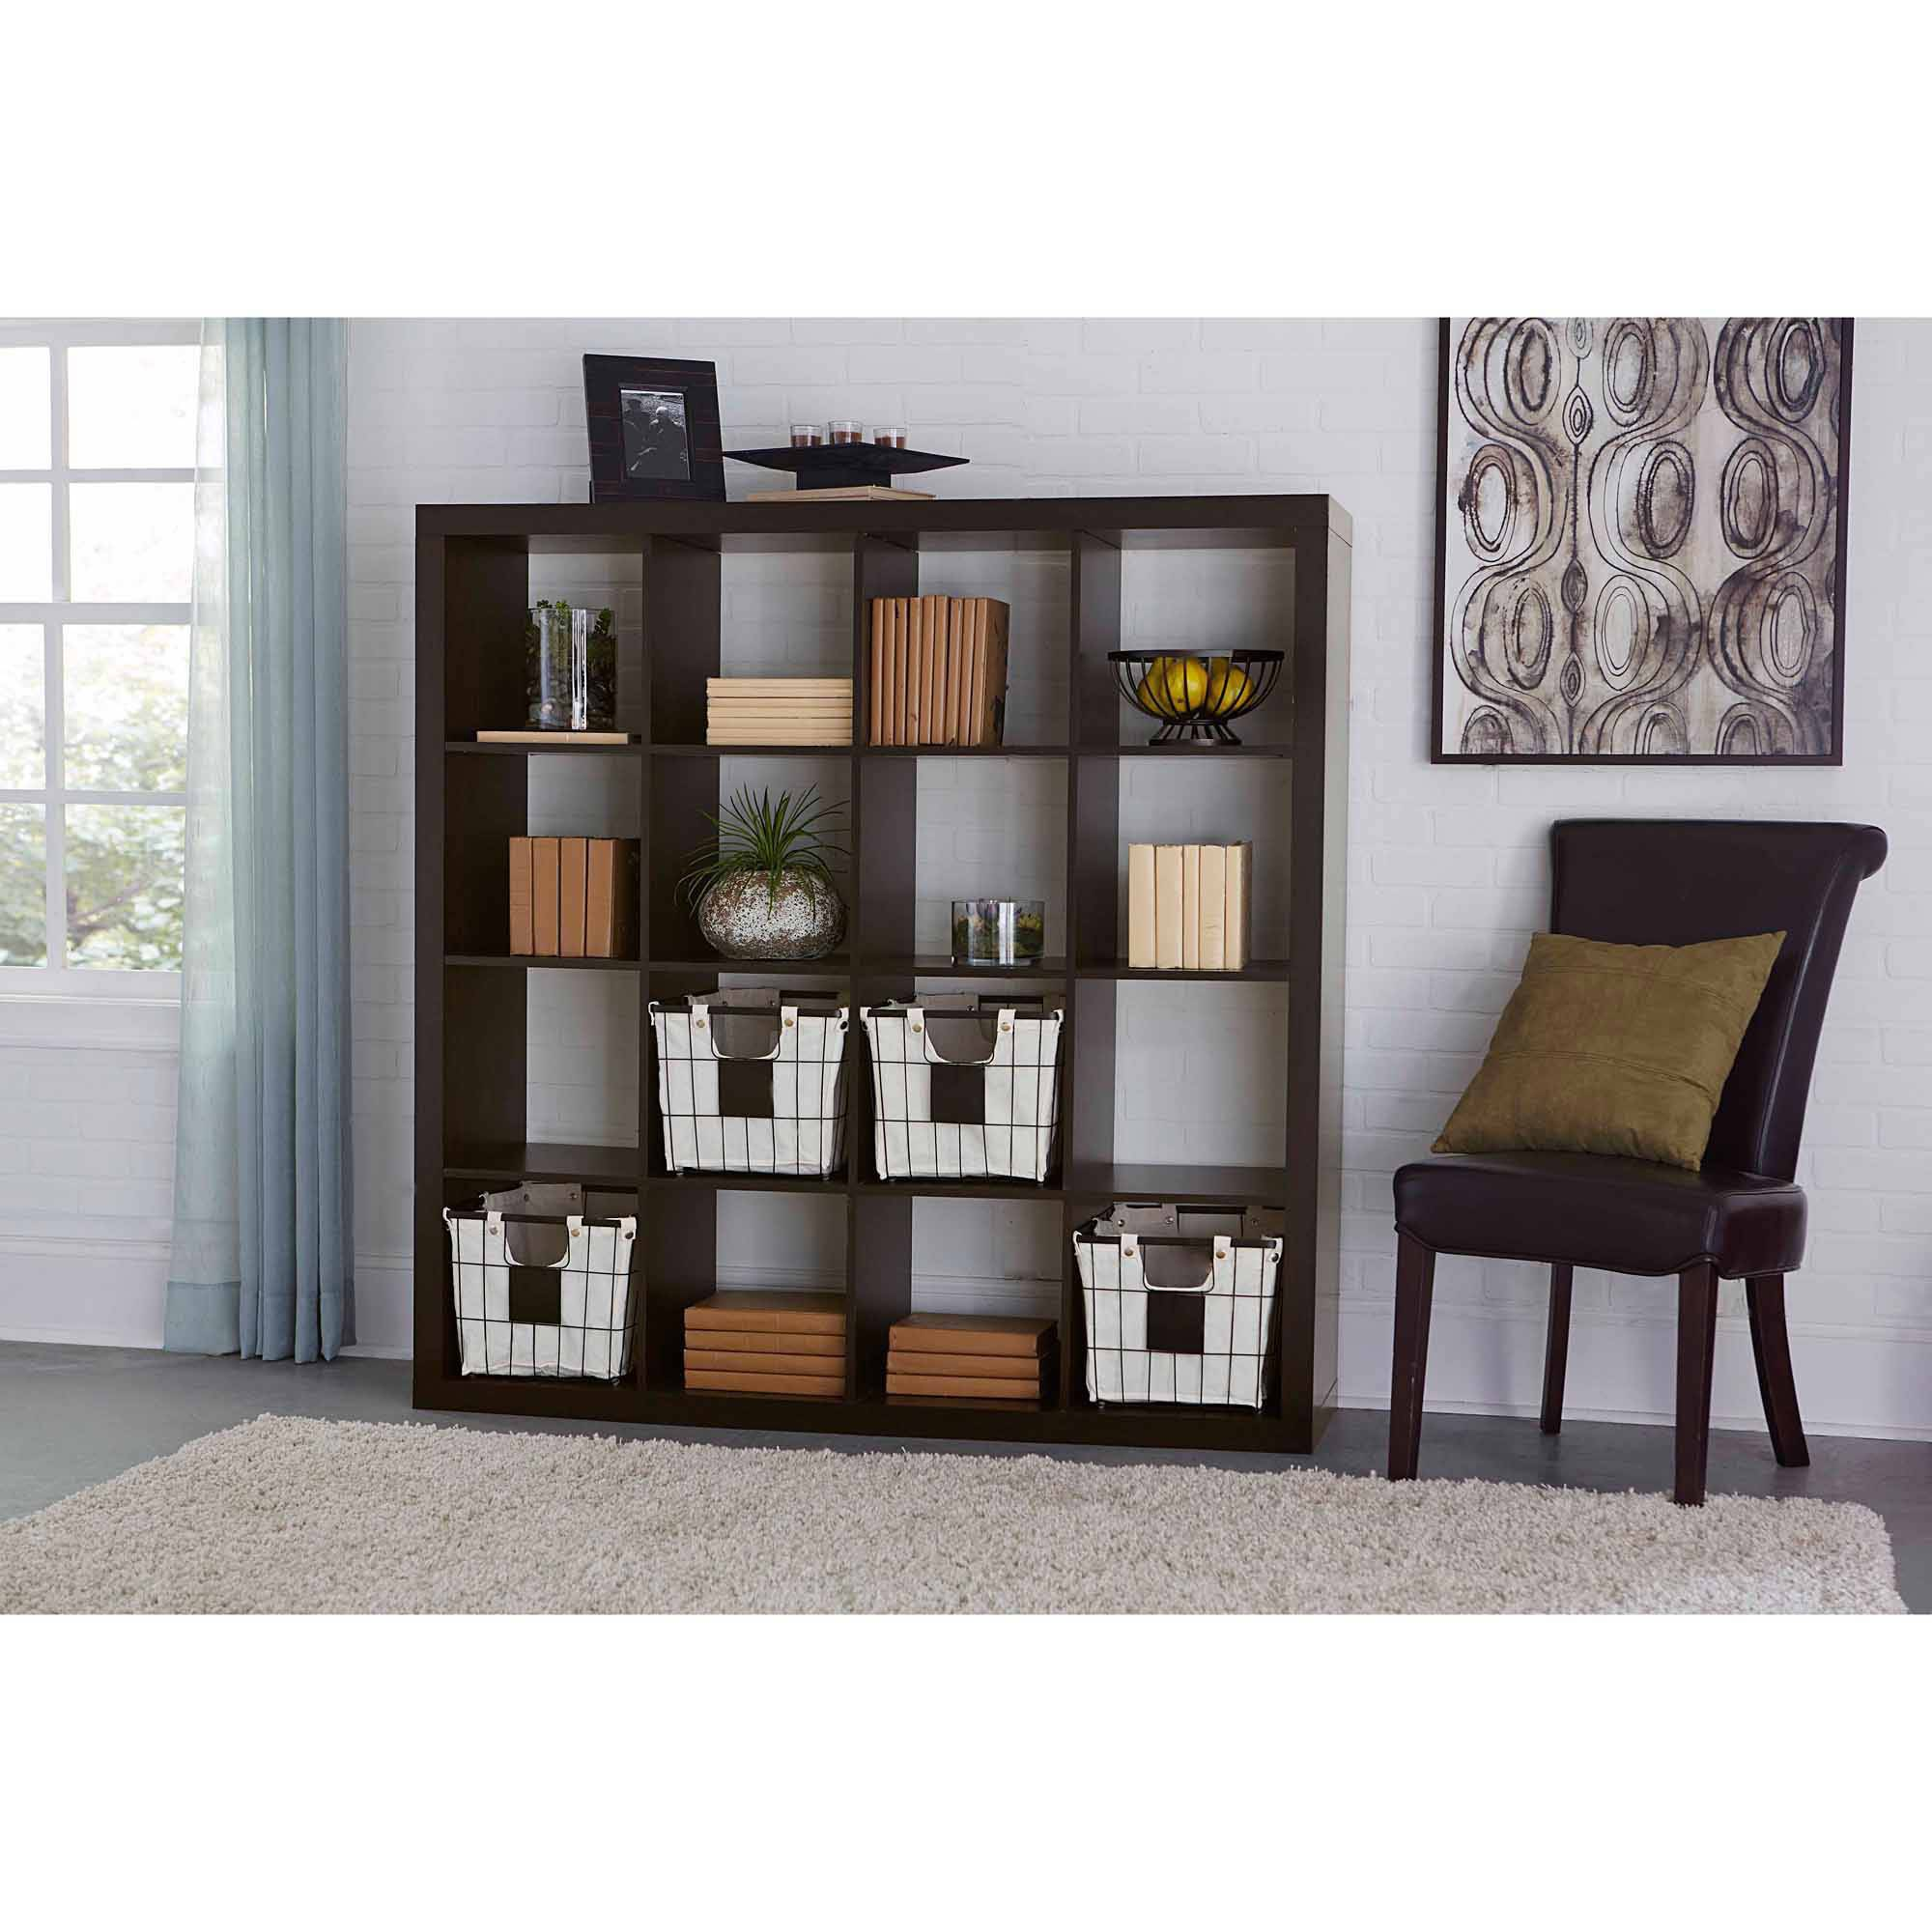 Great Better Homes And Gardens 16 Cube Storage Organizer, Multiple Colors    Walmart.com